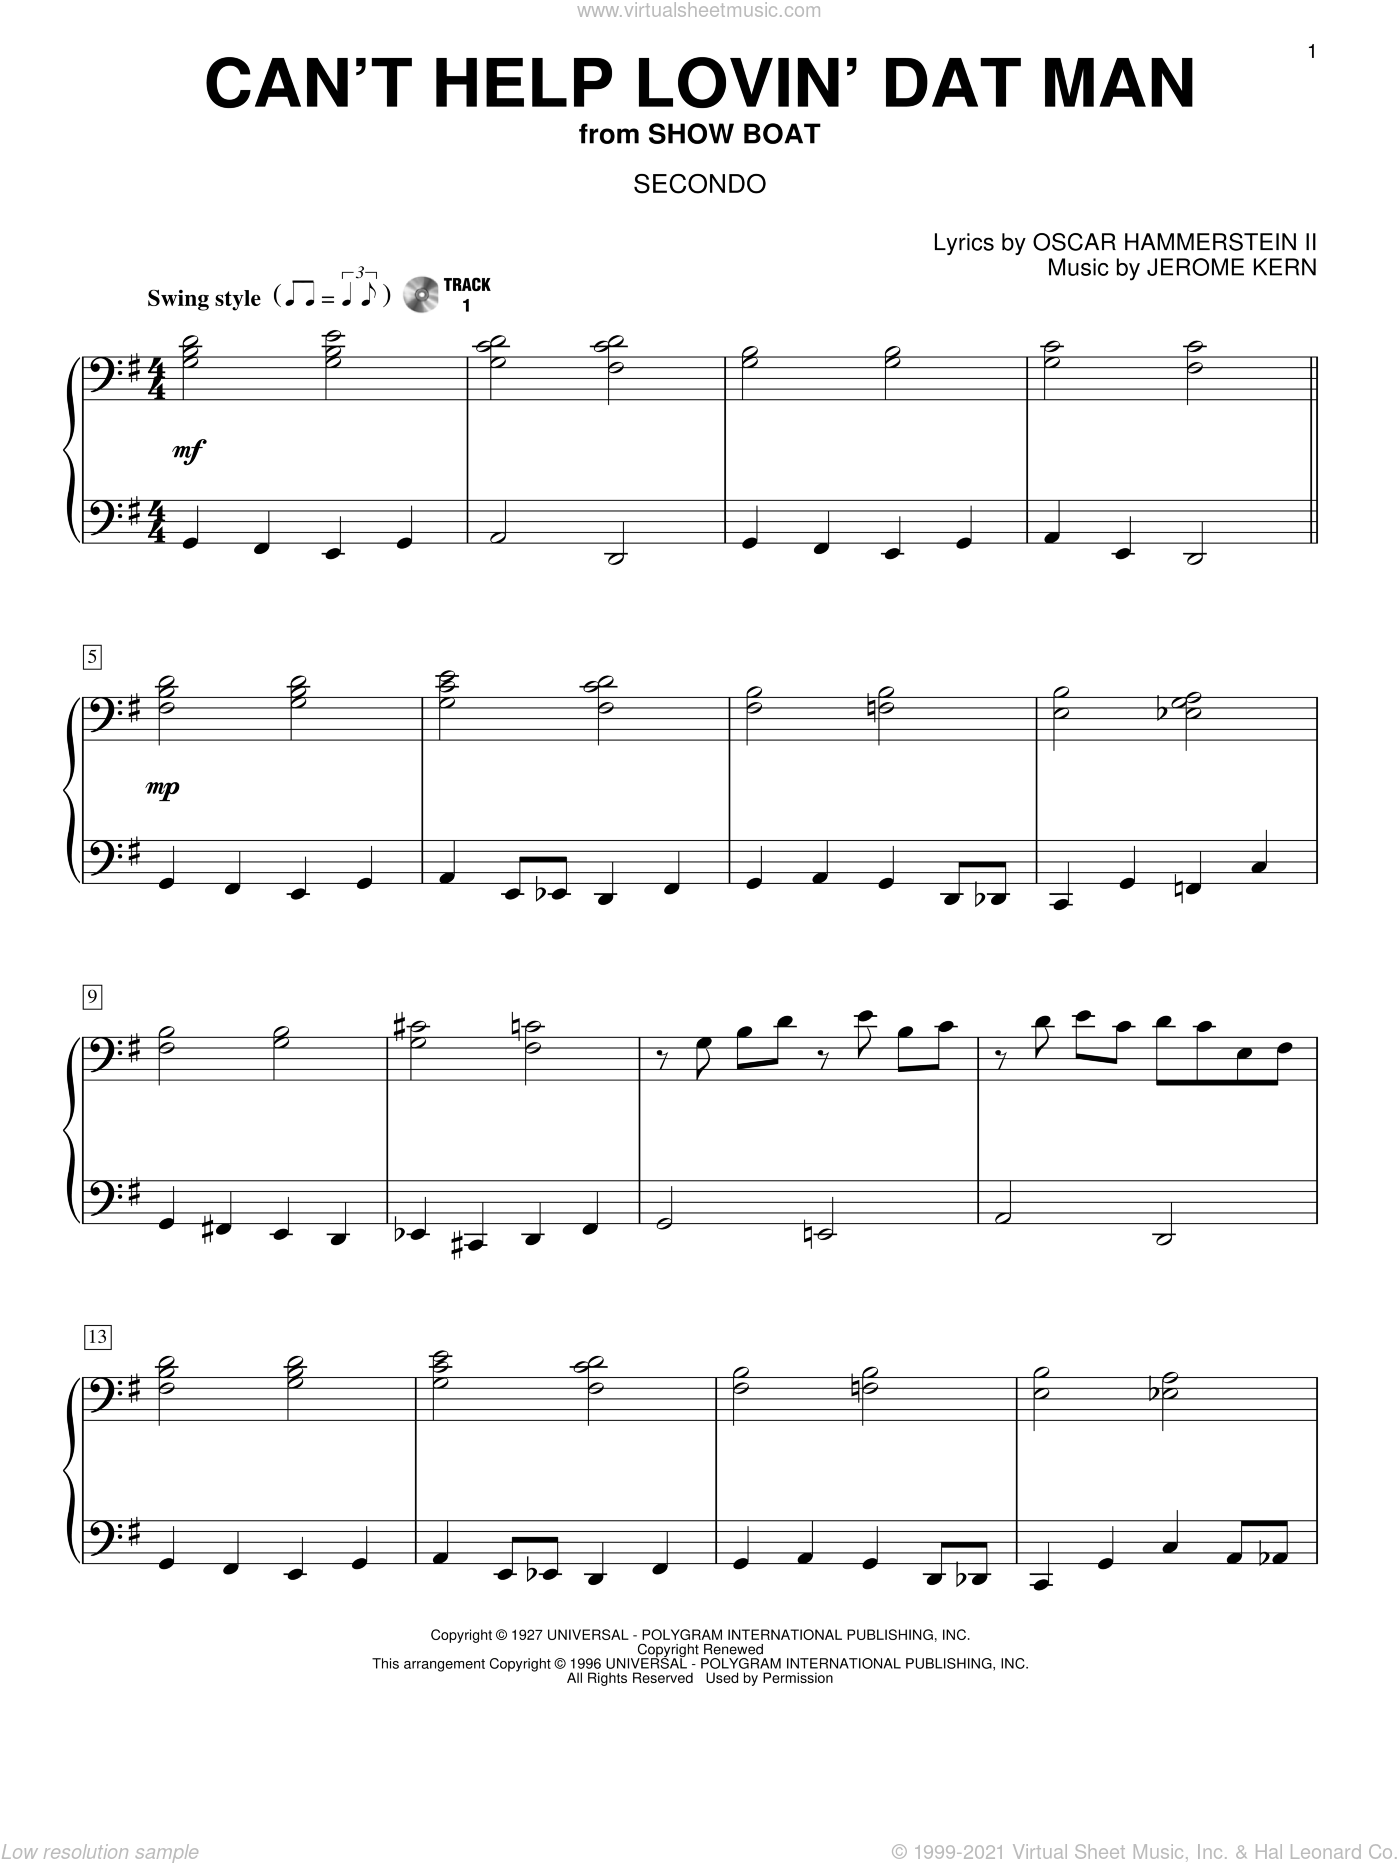 Can't Help Lovin' Dat Man sheet music for piano four hands (duets) by Oscar II Hammerstein